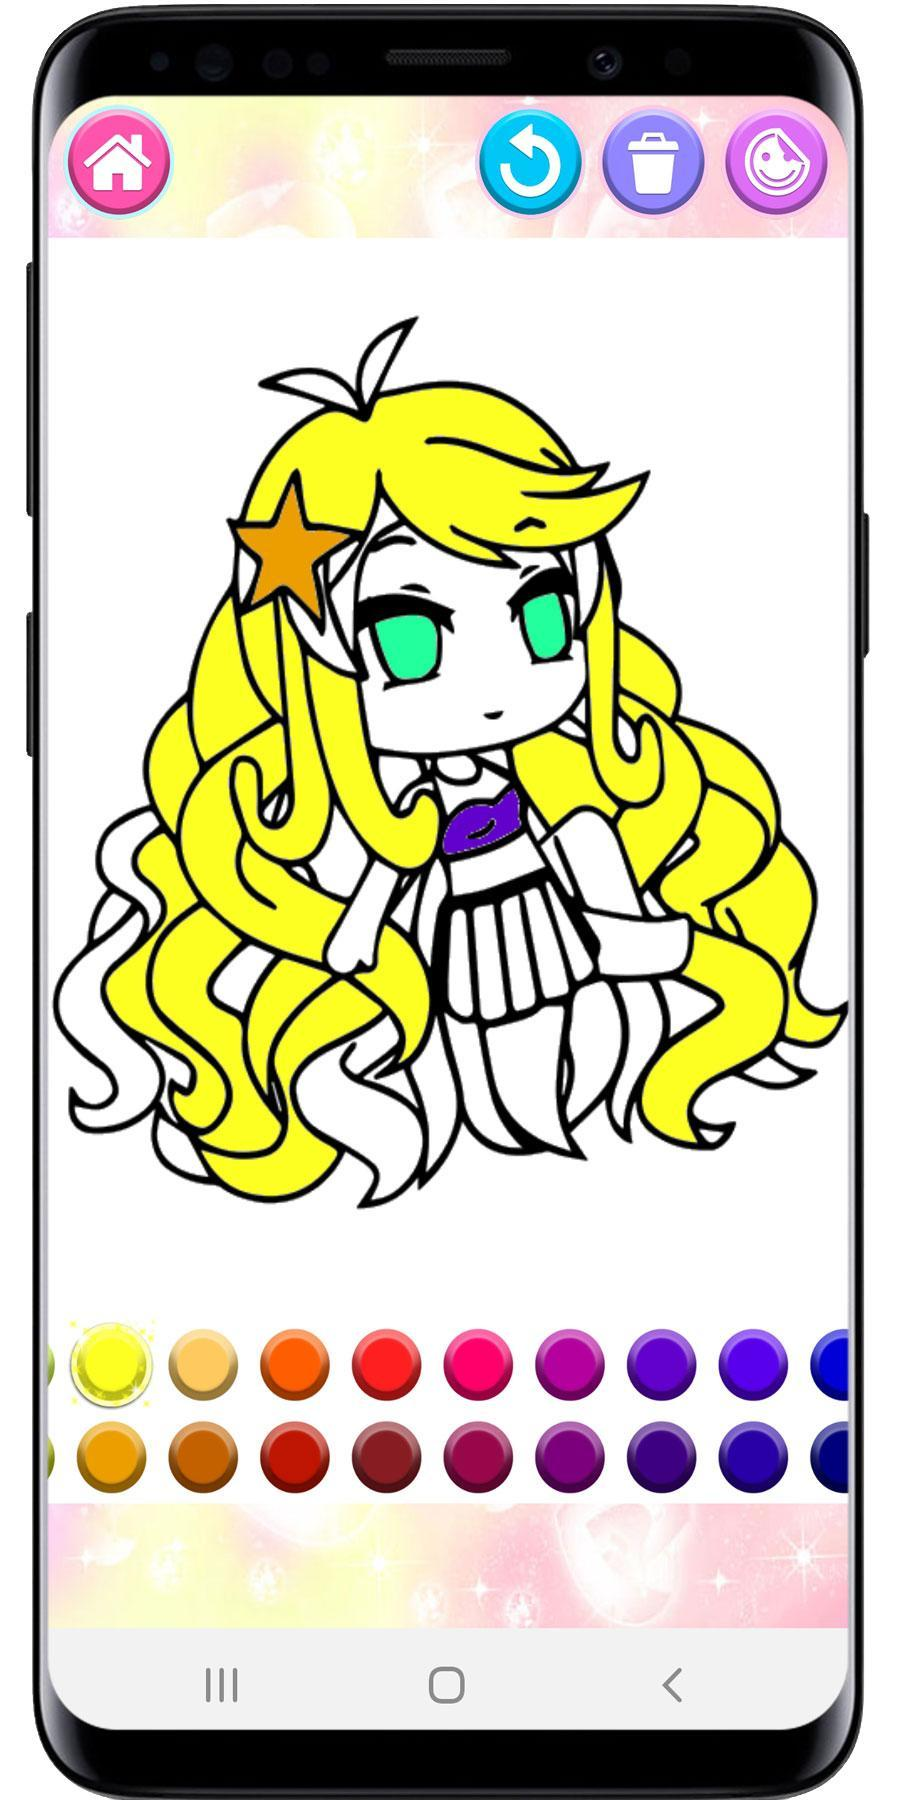 How To Color Gacha Life Coloring Book For Android Apk